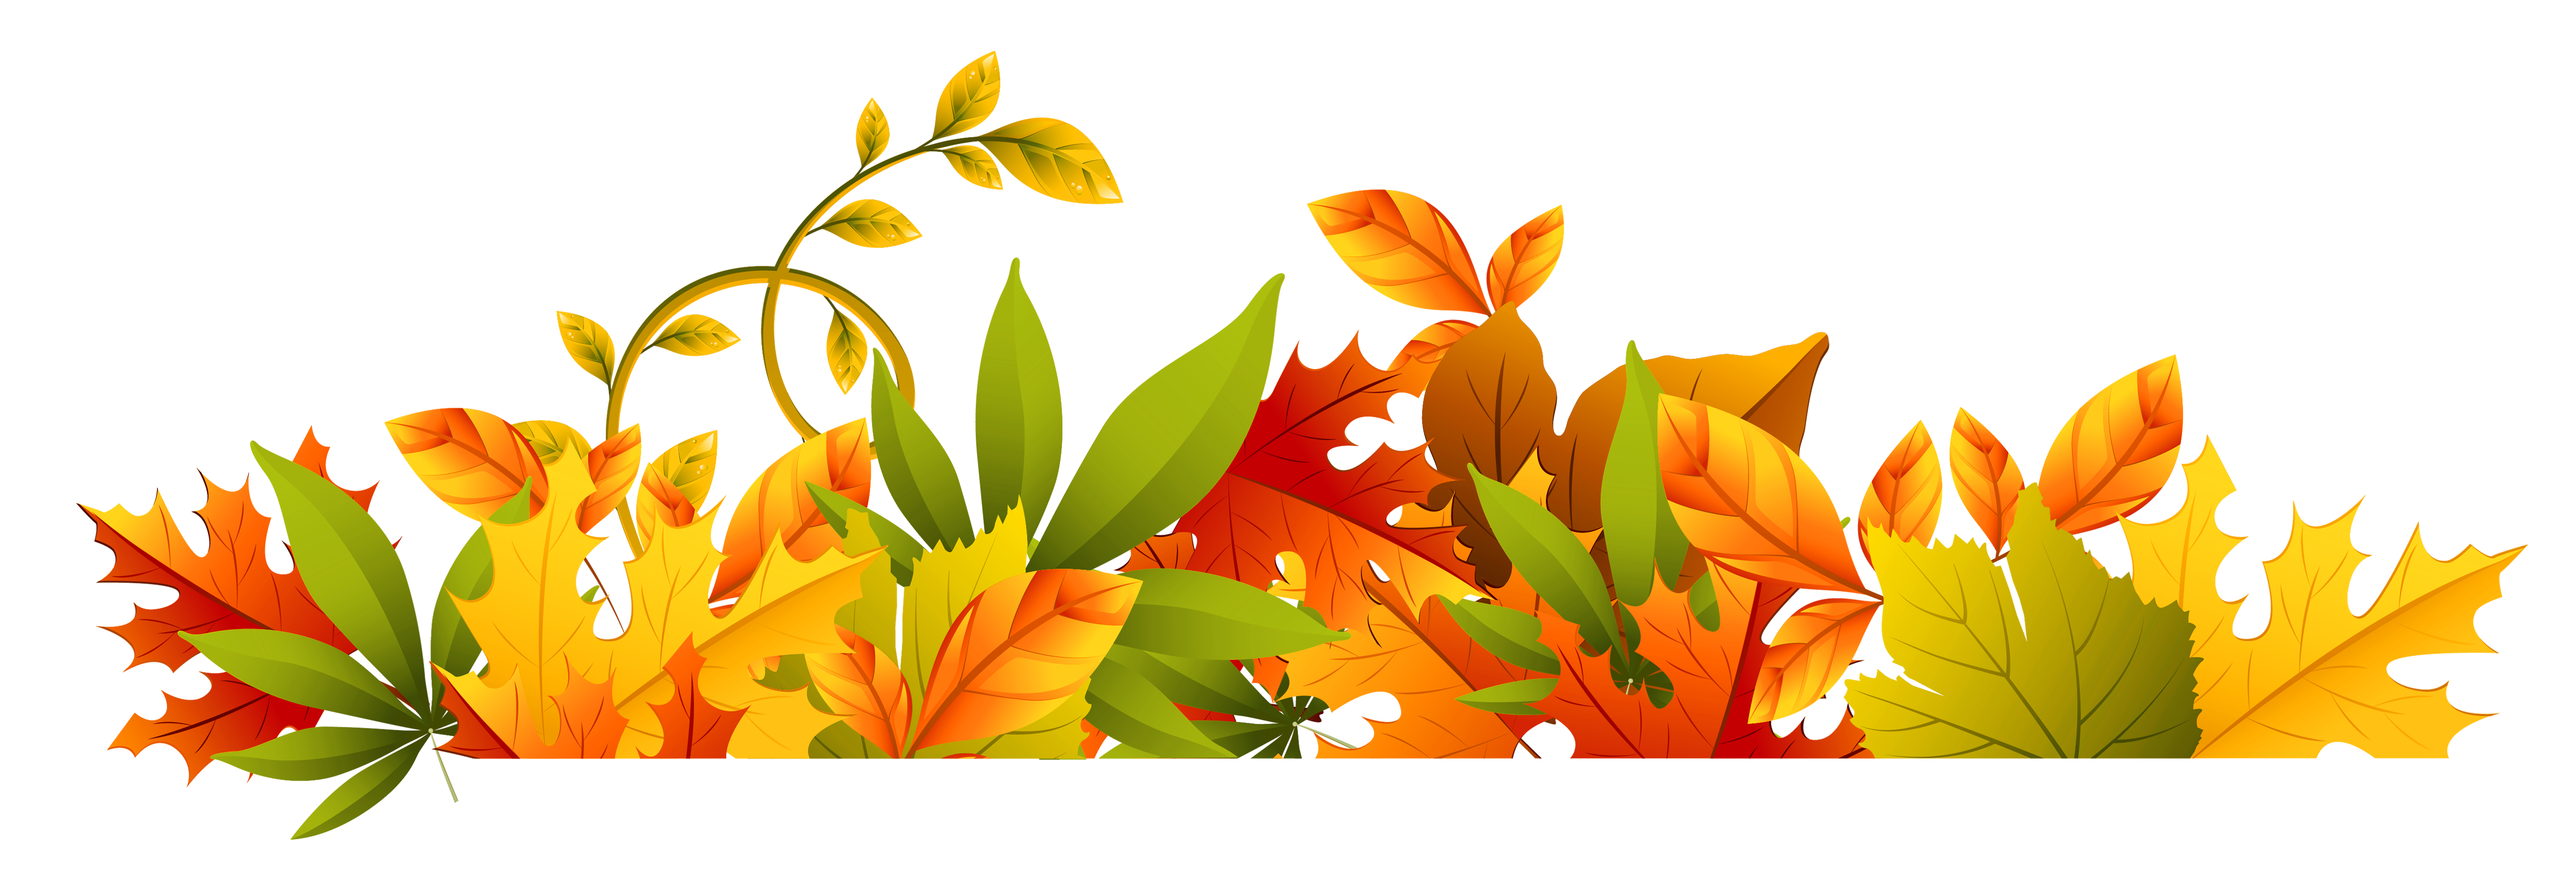 Fall flower png. Transparent autumn border clipart